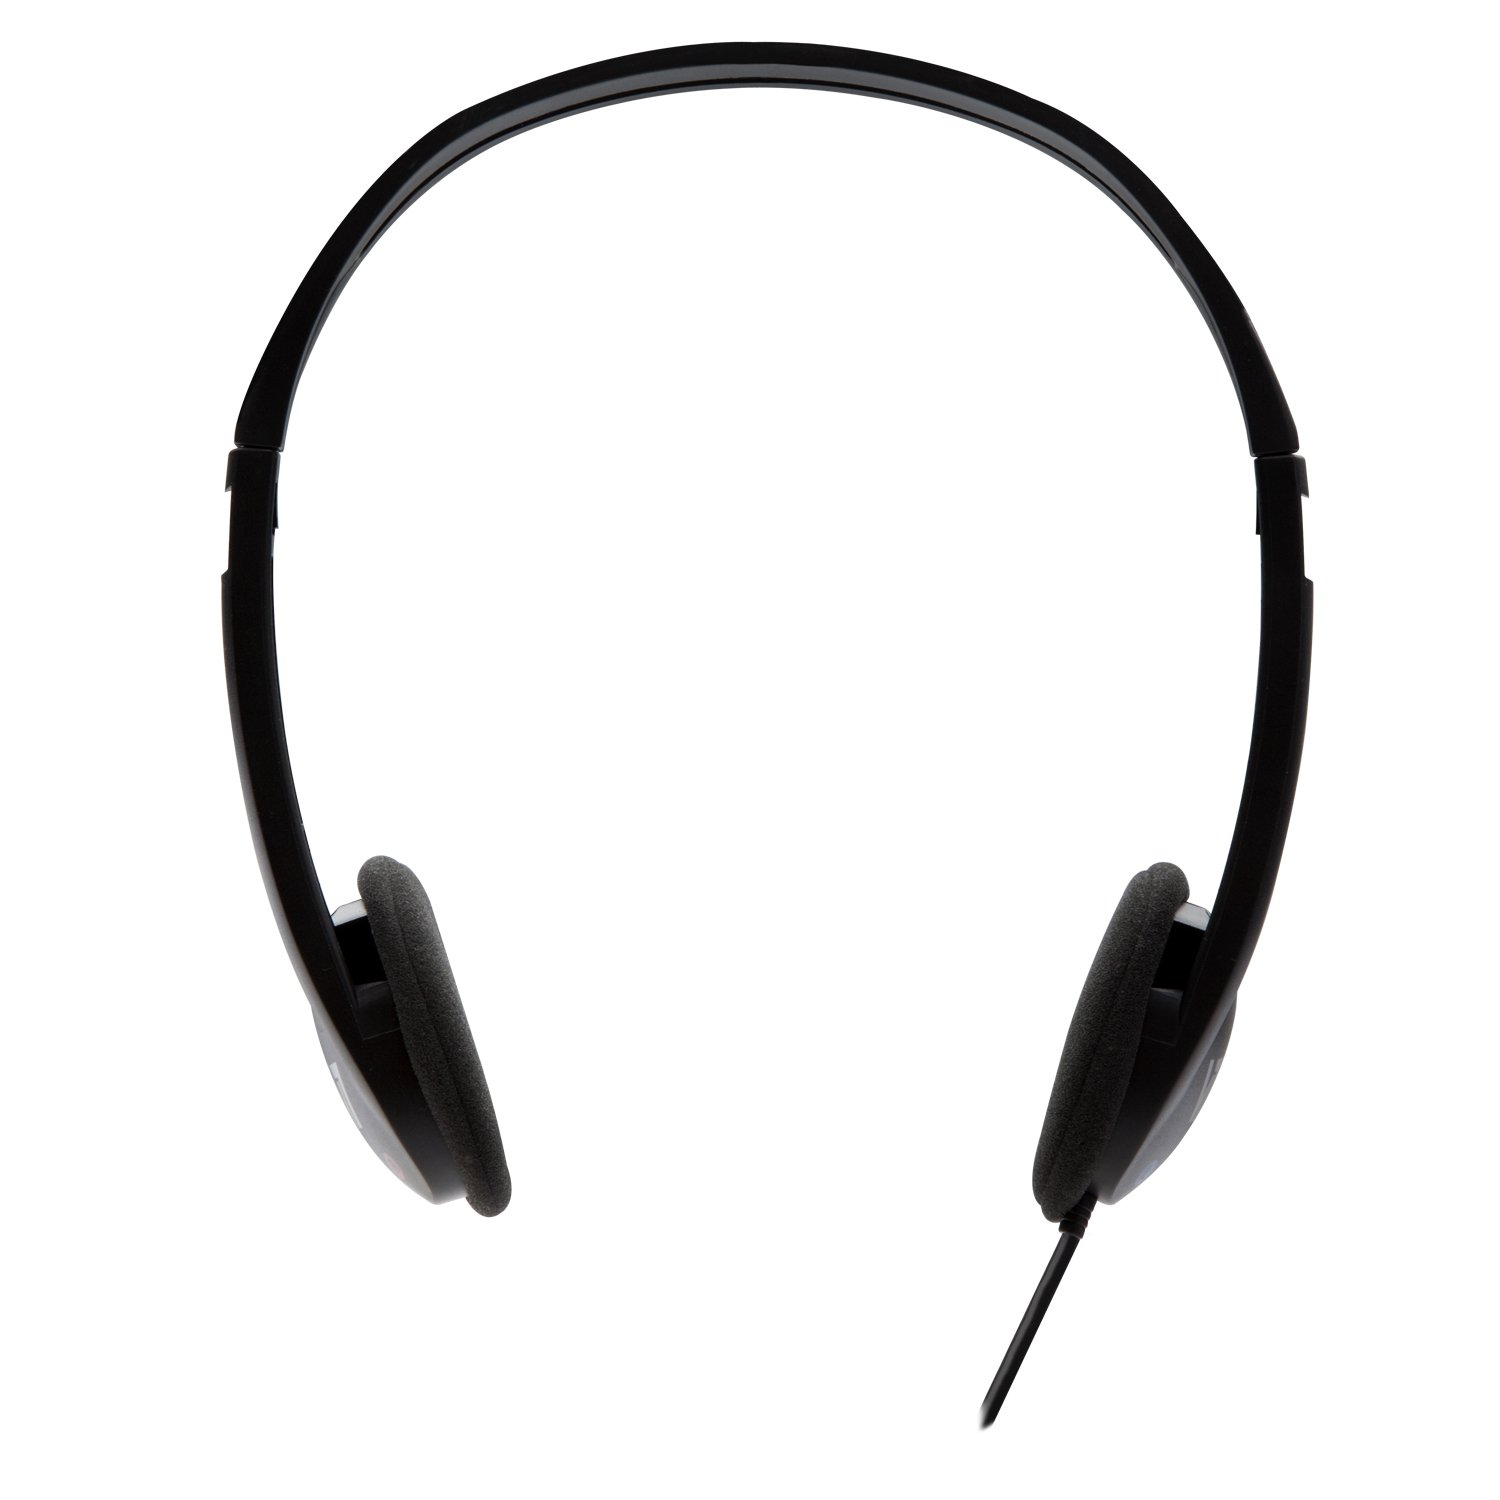 V7 HU511-2NP Deluxe USB Headset With Noise-Canceling Mic and Volume Control batman incorporated volume 1 deluxe